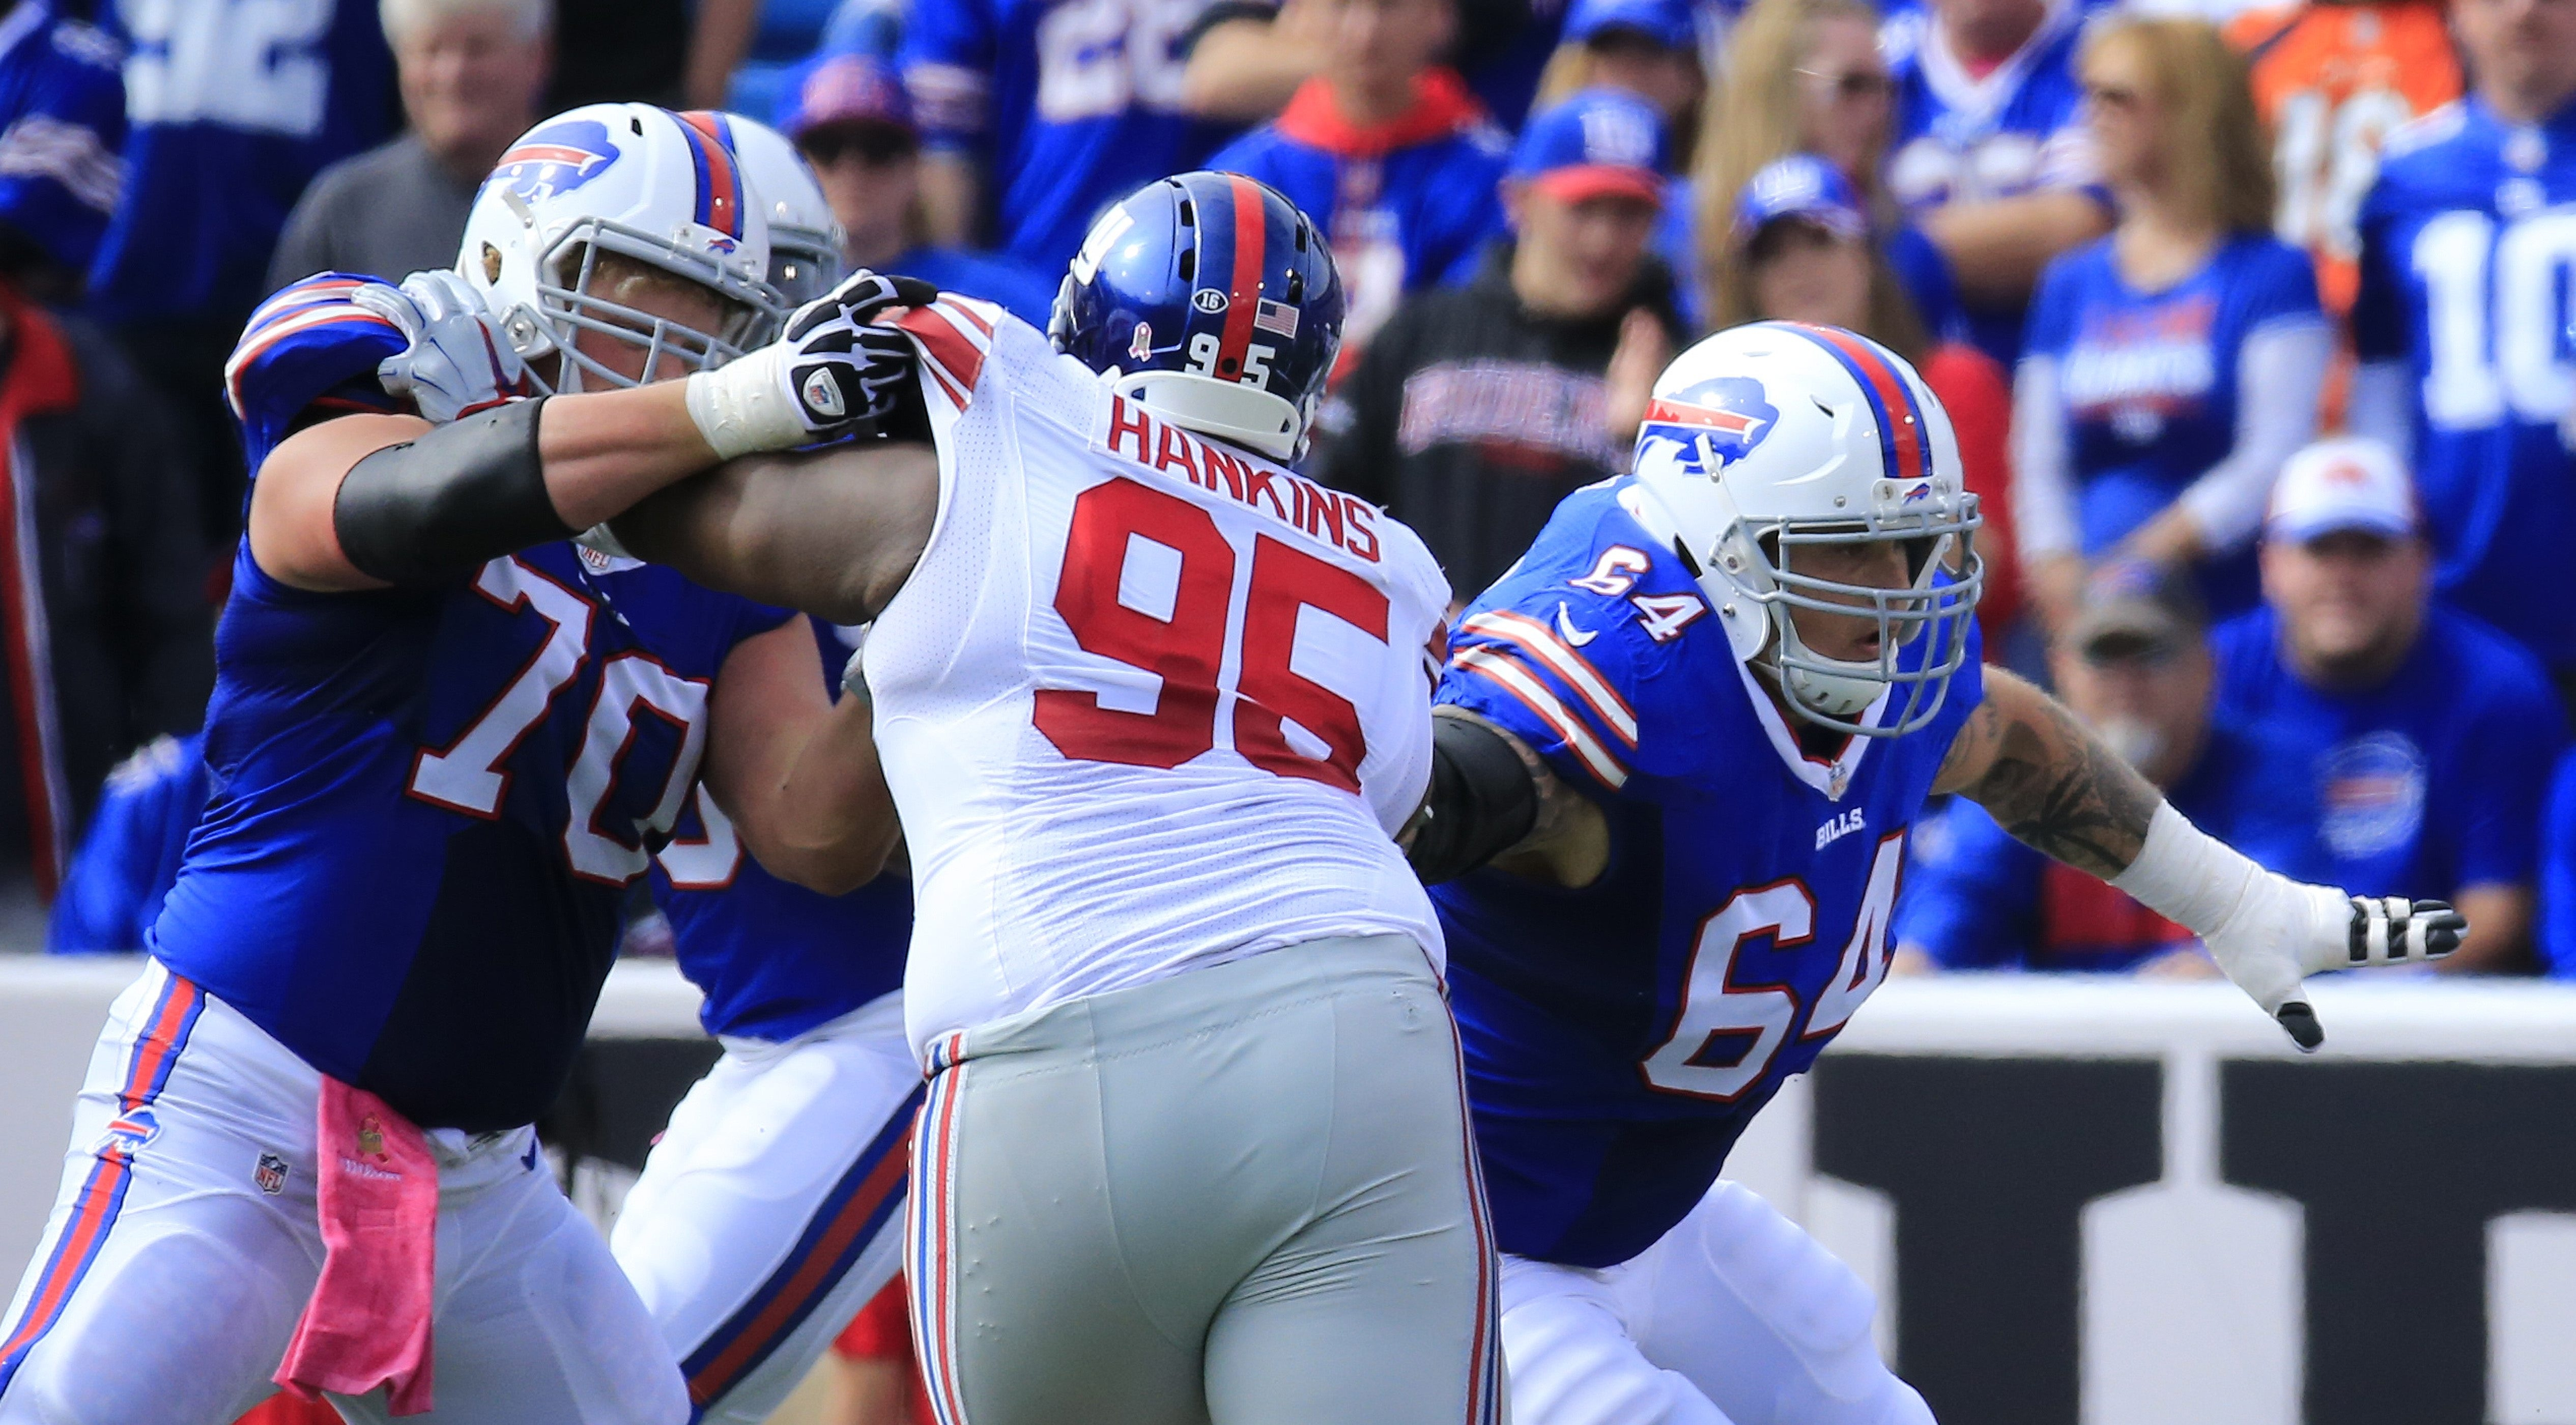 Buffalo Bills offensive linemen Eric Wood (70) and Richie Incognito (64) block Jonathan Hankins of the New York Giants during second-quarter action at Ralph Wilson Stadium on Oct. 4, 2015.